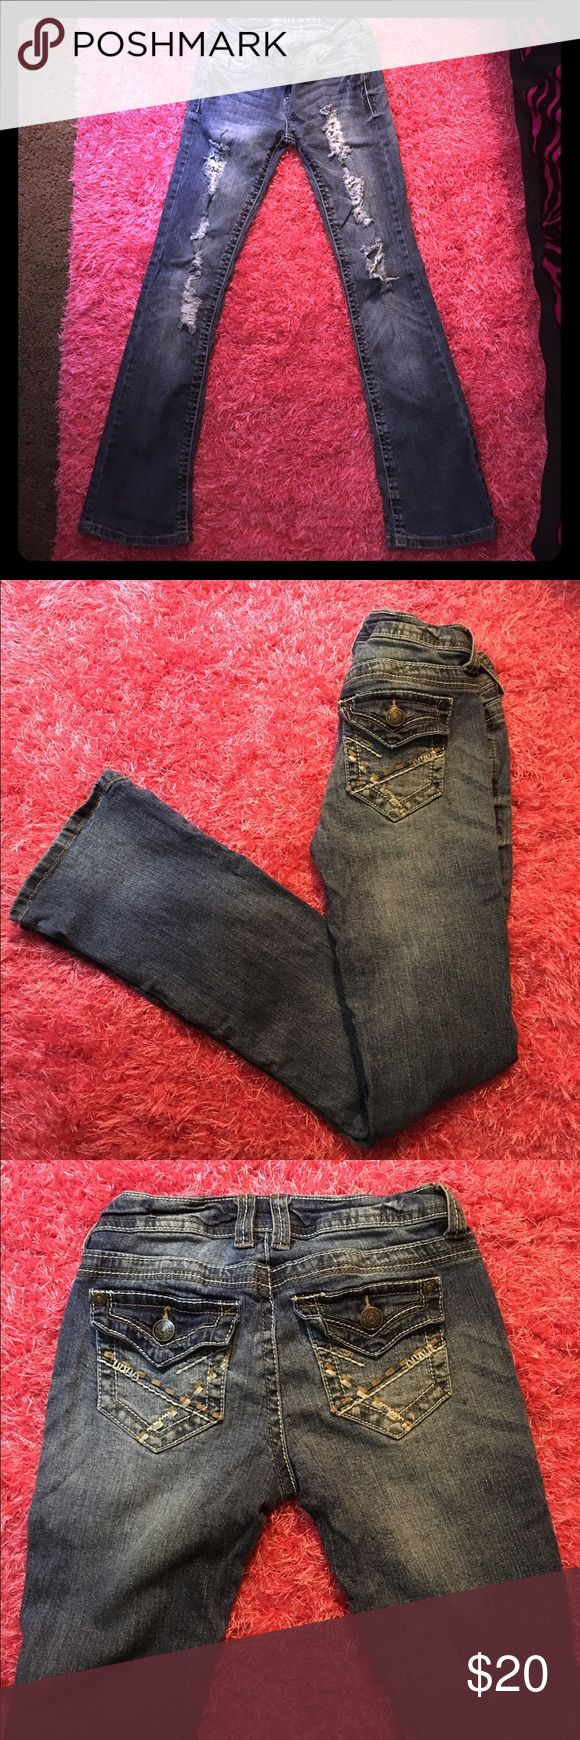 "Distressed Wallflower boot cut jeans 👖 size 3 These Wallflower jeans are a size 3 in juniors and are boot cut. They are very stretchy. I wear 0's and 1's. I purchase these when I was pregnant with my second child and now they're a little too loose for me 😔 The inseams measures at about 30"" and the waist across is 13"" Wallflower Jeans Boot Cut"